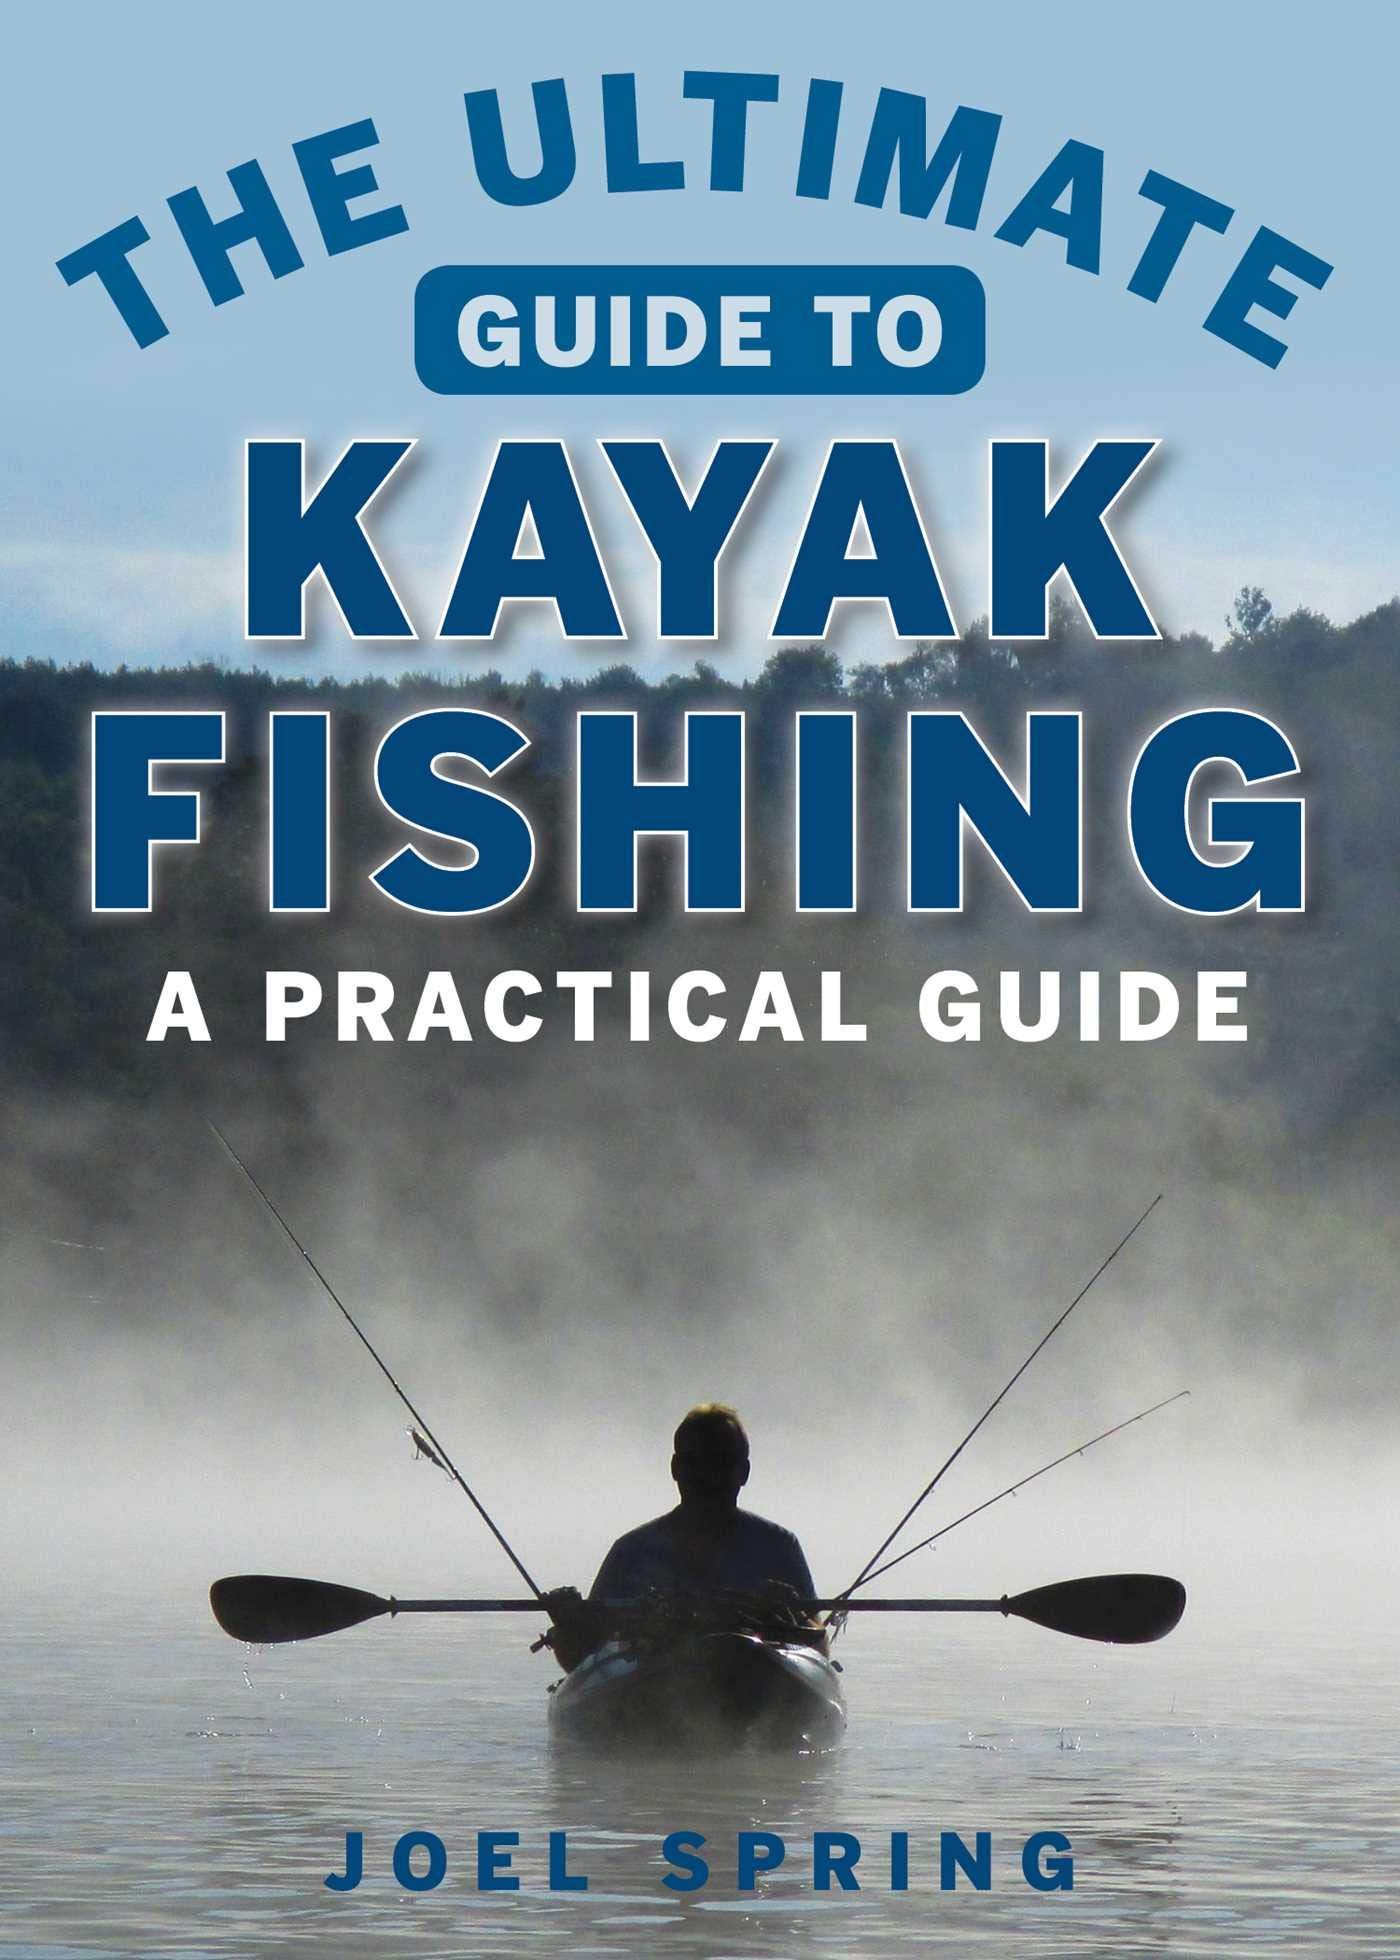 The Ultimate Guide to Kayak Fishing A Practical Guide